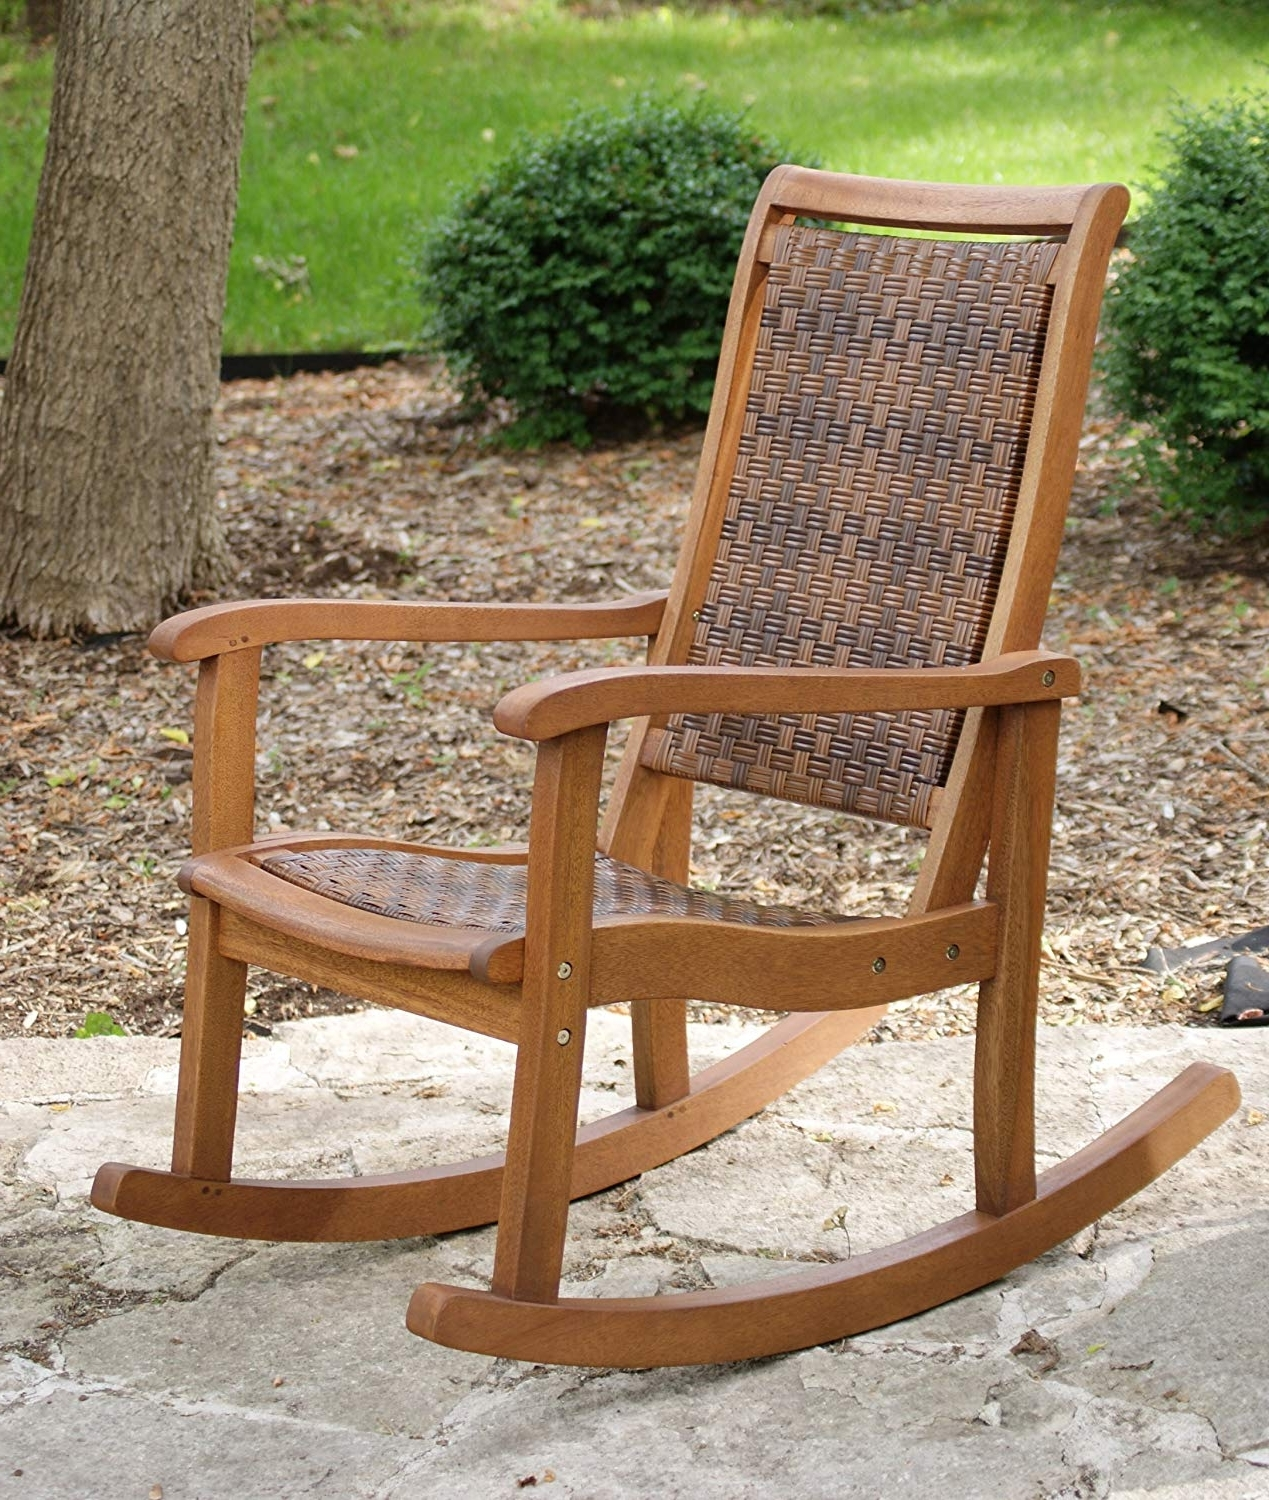 Outdoor Vinyl Rocking Chairs With Widely Used Amazon : Outdoor Interiors 21095Rc All Weather Wicker Mocha And (View 11 of 15)